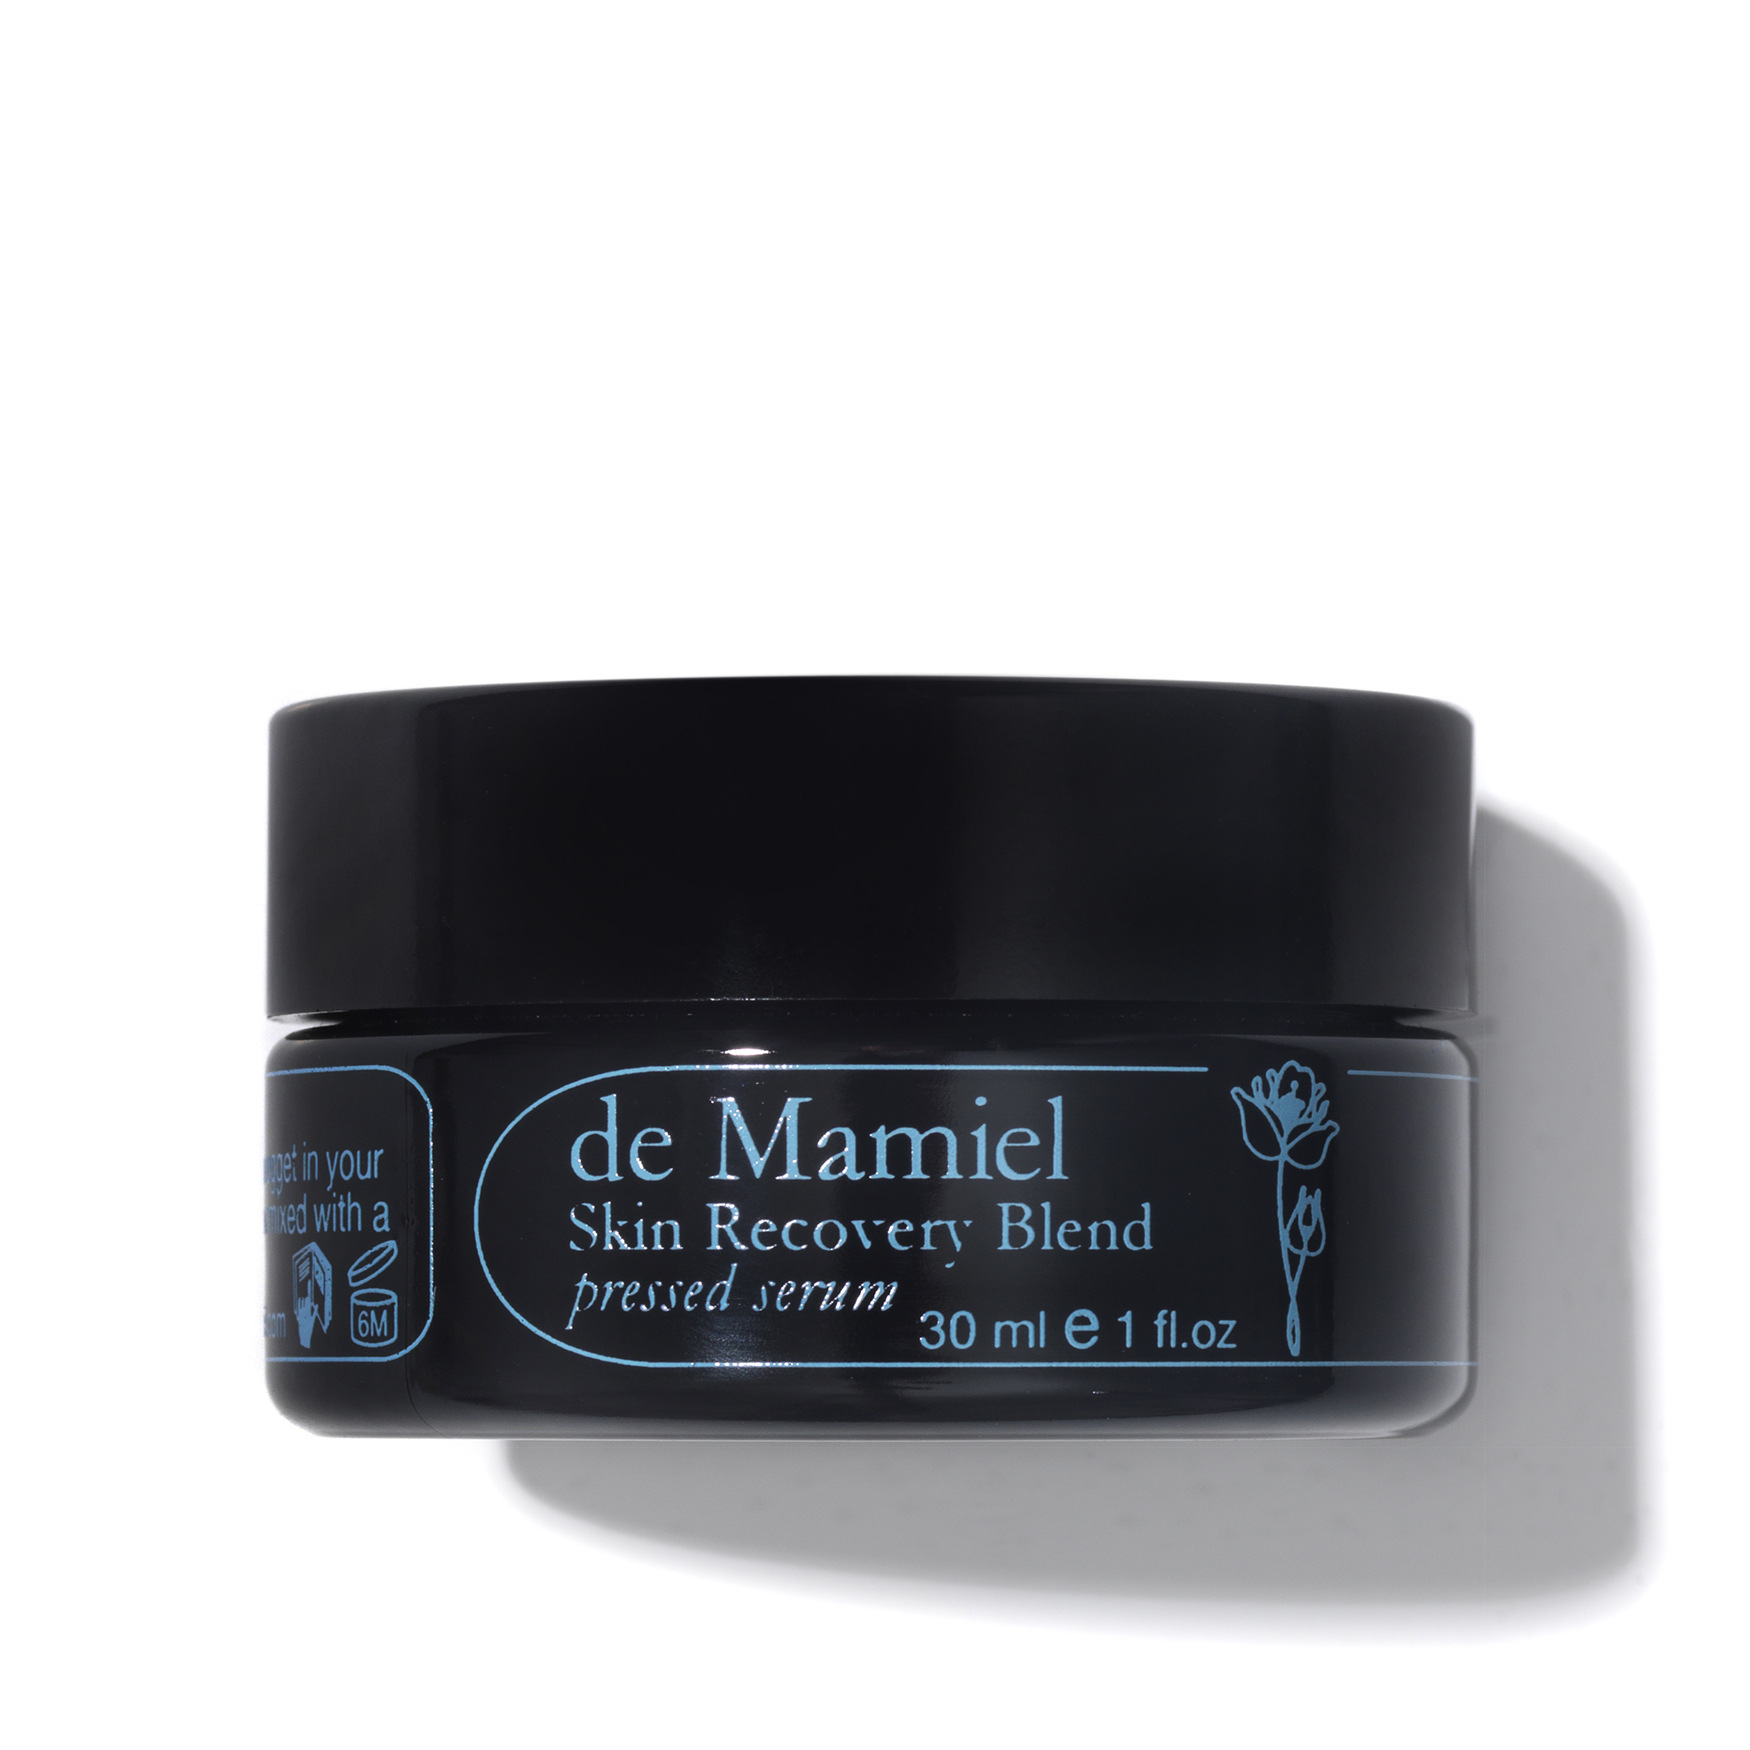 de Mamiel The Skin Recovery Blend